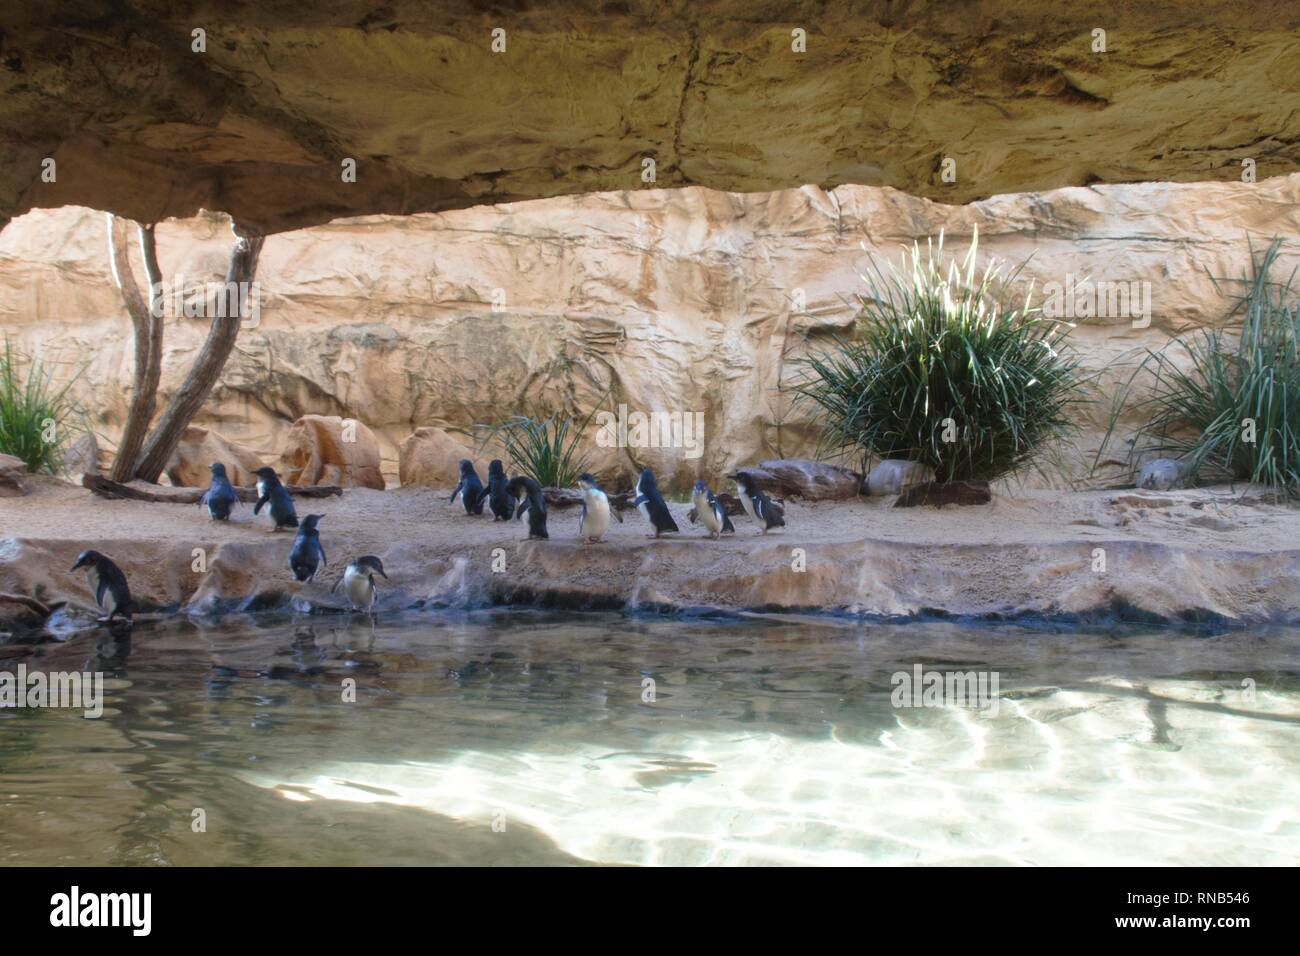 Penguins enjoying the jump into the cold water Stock Photo